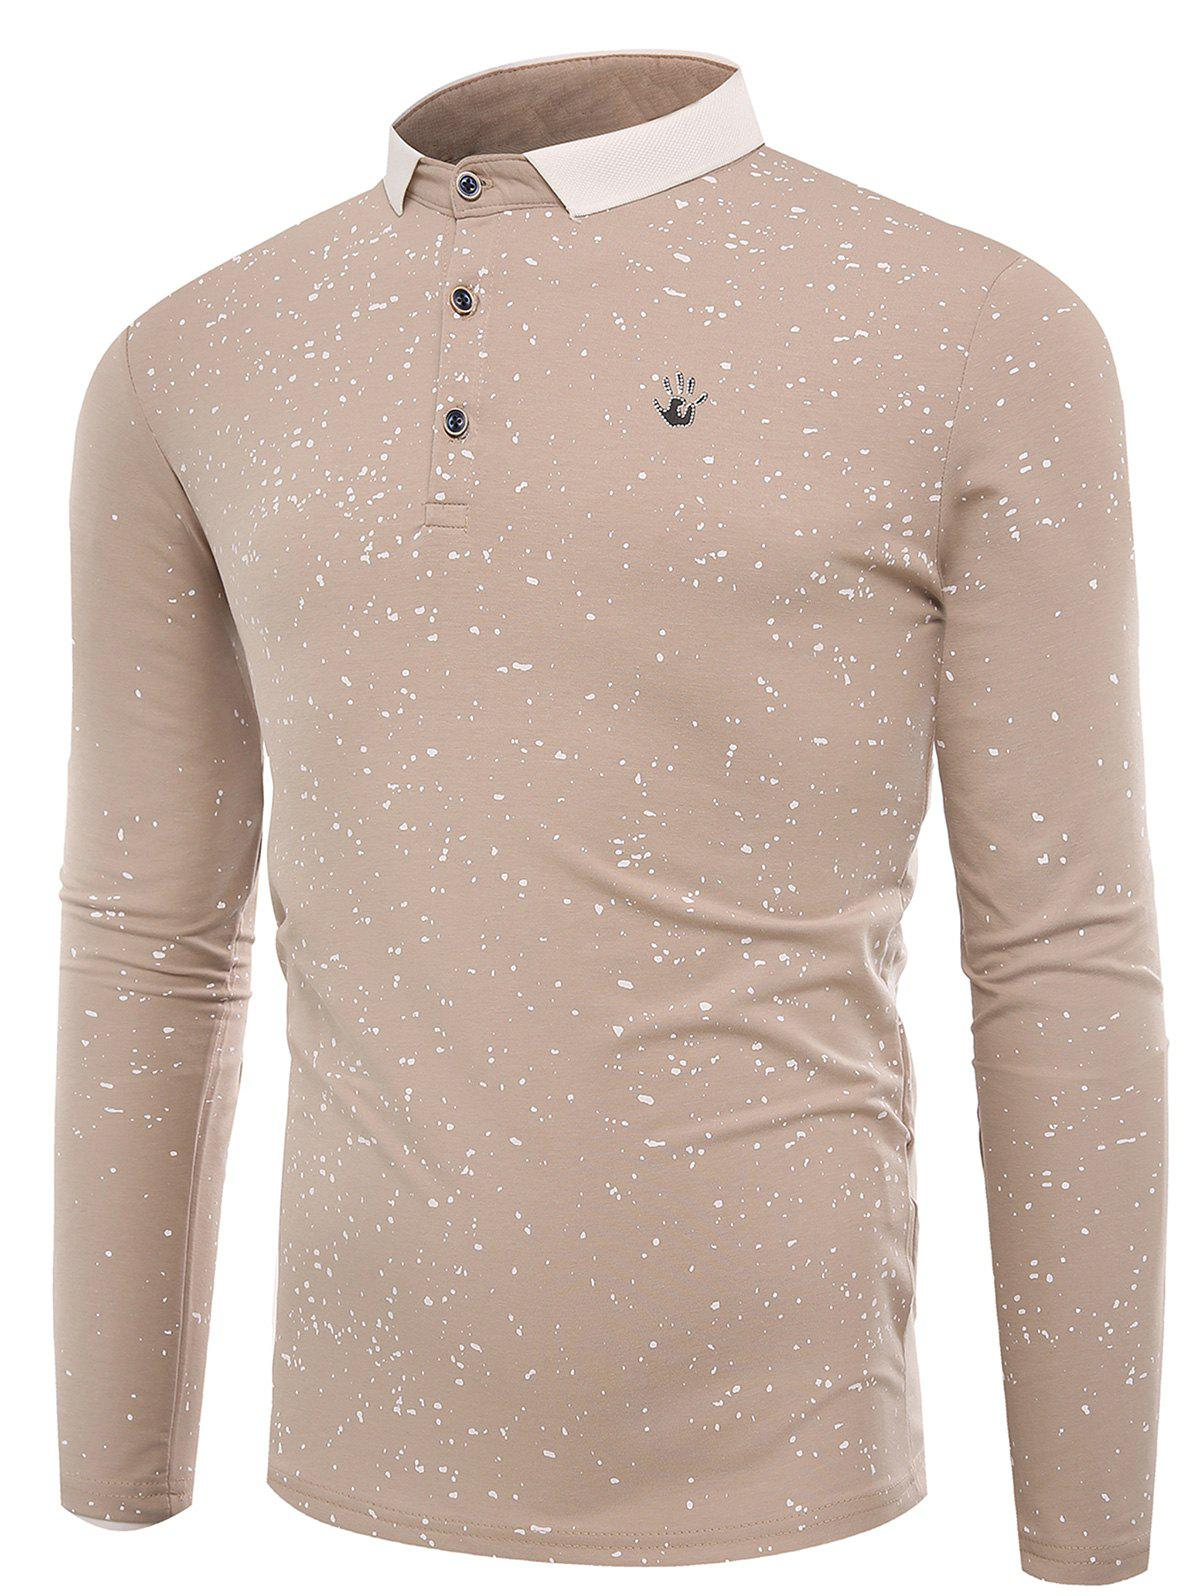 Splatter Paint Print Long Sleeve Polo T-shirtMEN<br><br>Size: L; Color: APRICOT; Material: Cotton,Polyester; Sleeve Length: Full; Collar: Polo Collar; Style: Casual,Fashion,Streetwear; Embellishment: Button; Pattern Type: Print; Season: Fall,Winter; Weight: 0.3600kg; Package Contents: 1 x T-shirt;